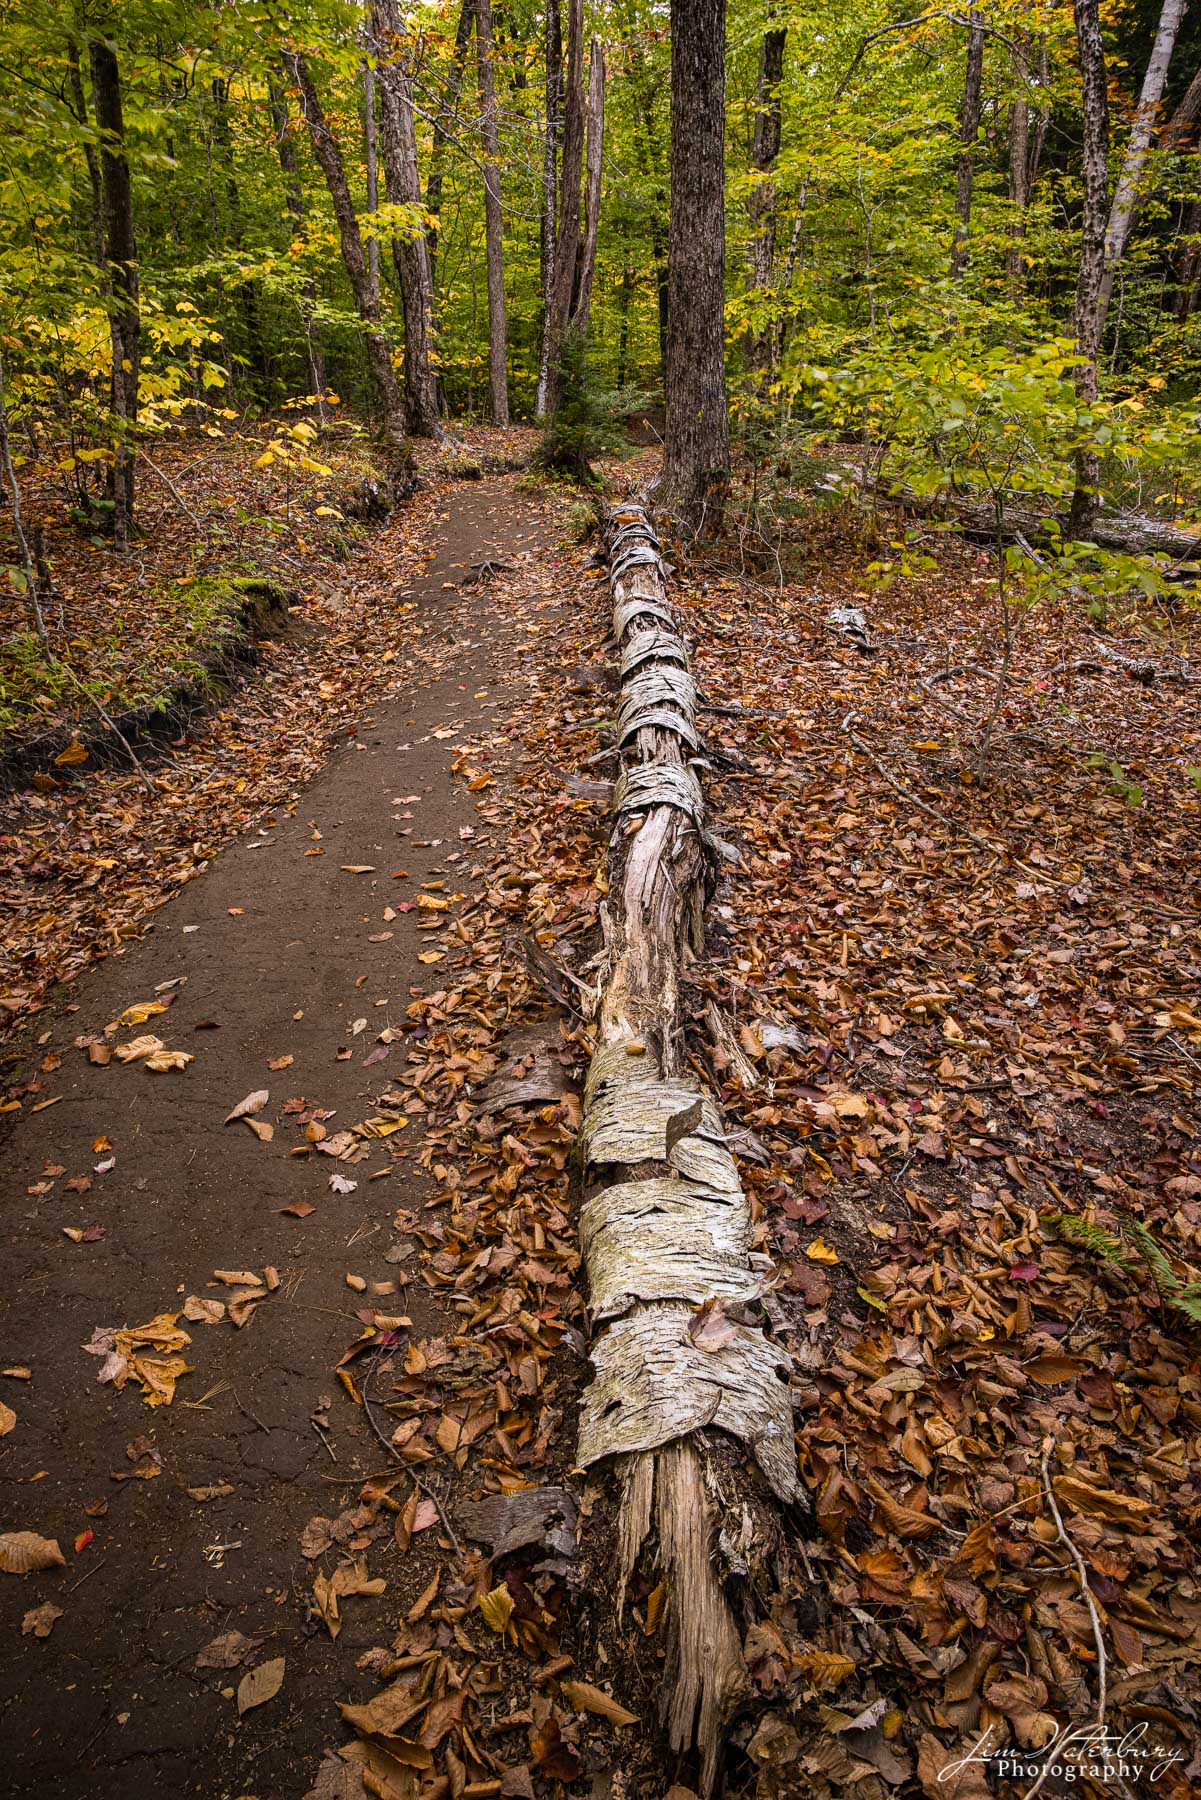 A fallen tree lying on the side of a trail along the Goose River sheds its bark into a bed of fallen leaves.